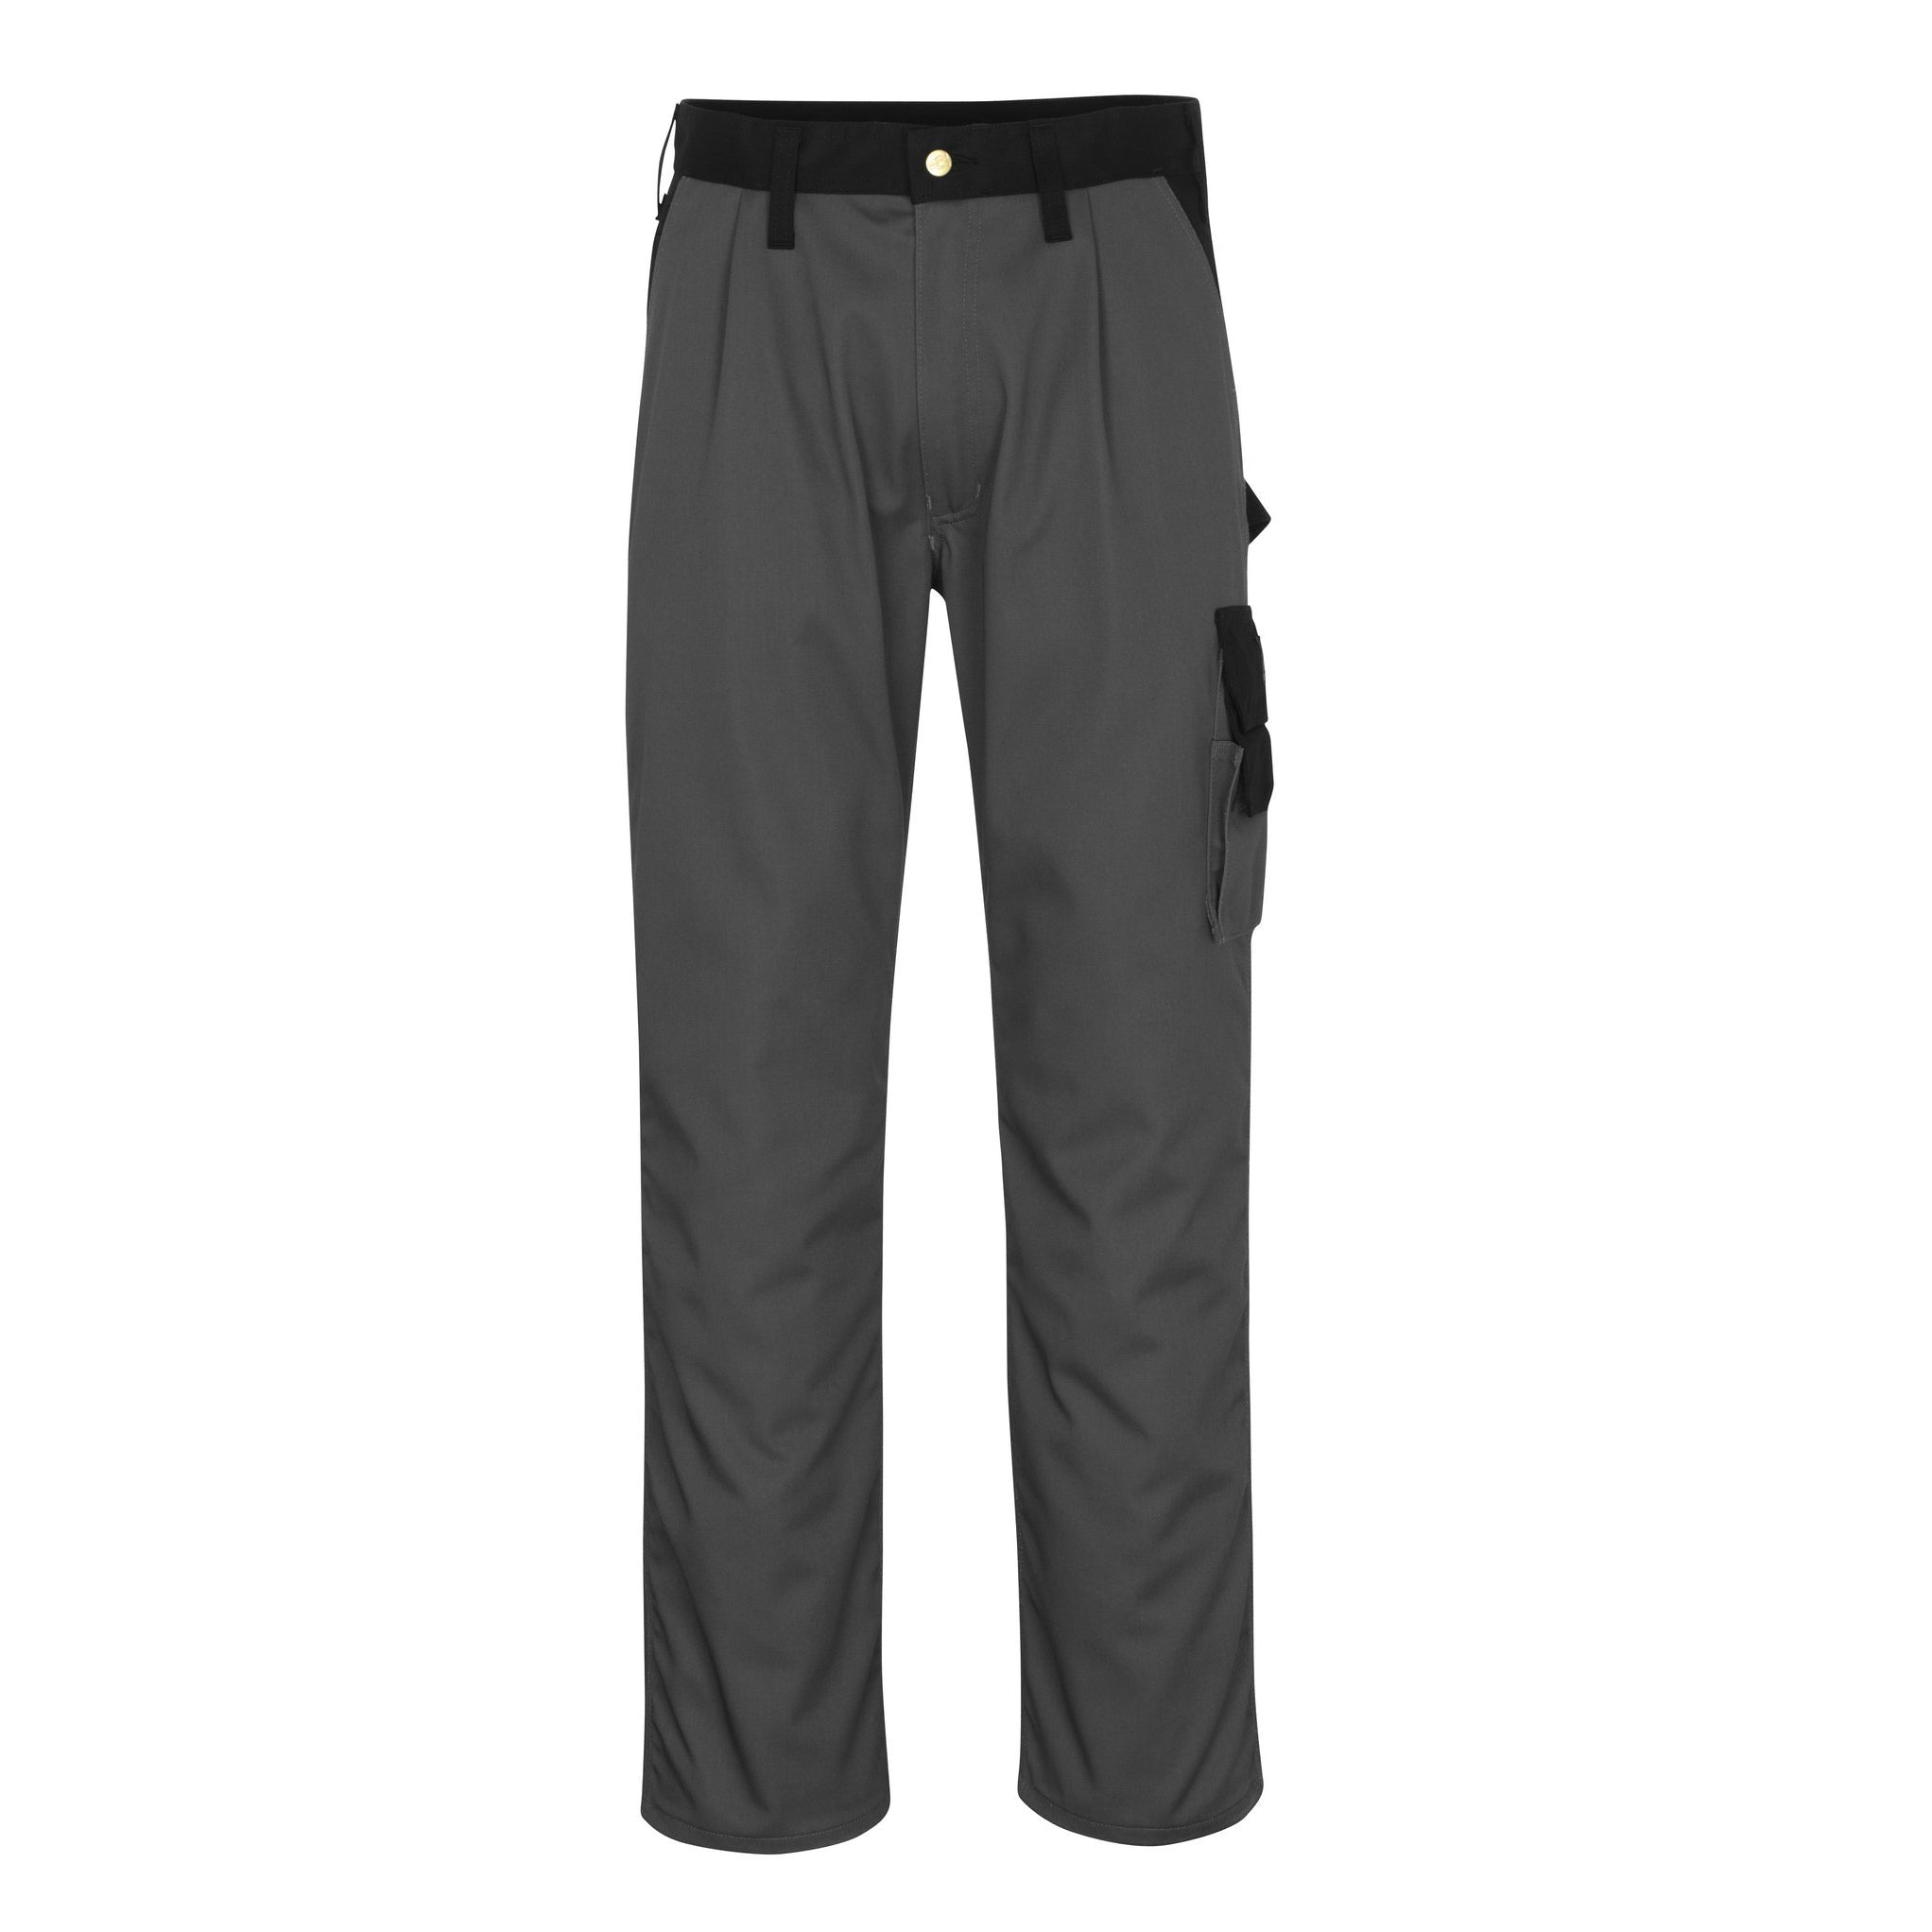 Mascot Salerno Image Trousers With Thigh Pockets